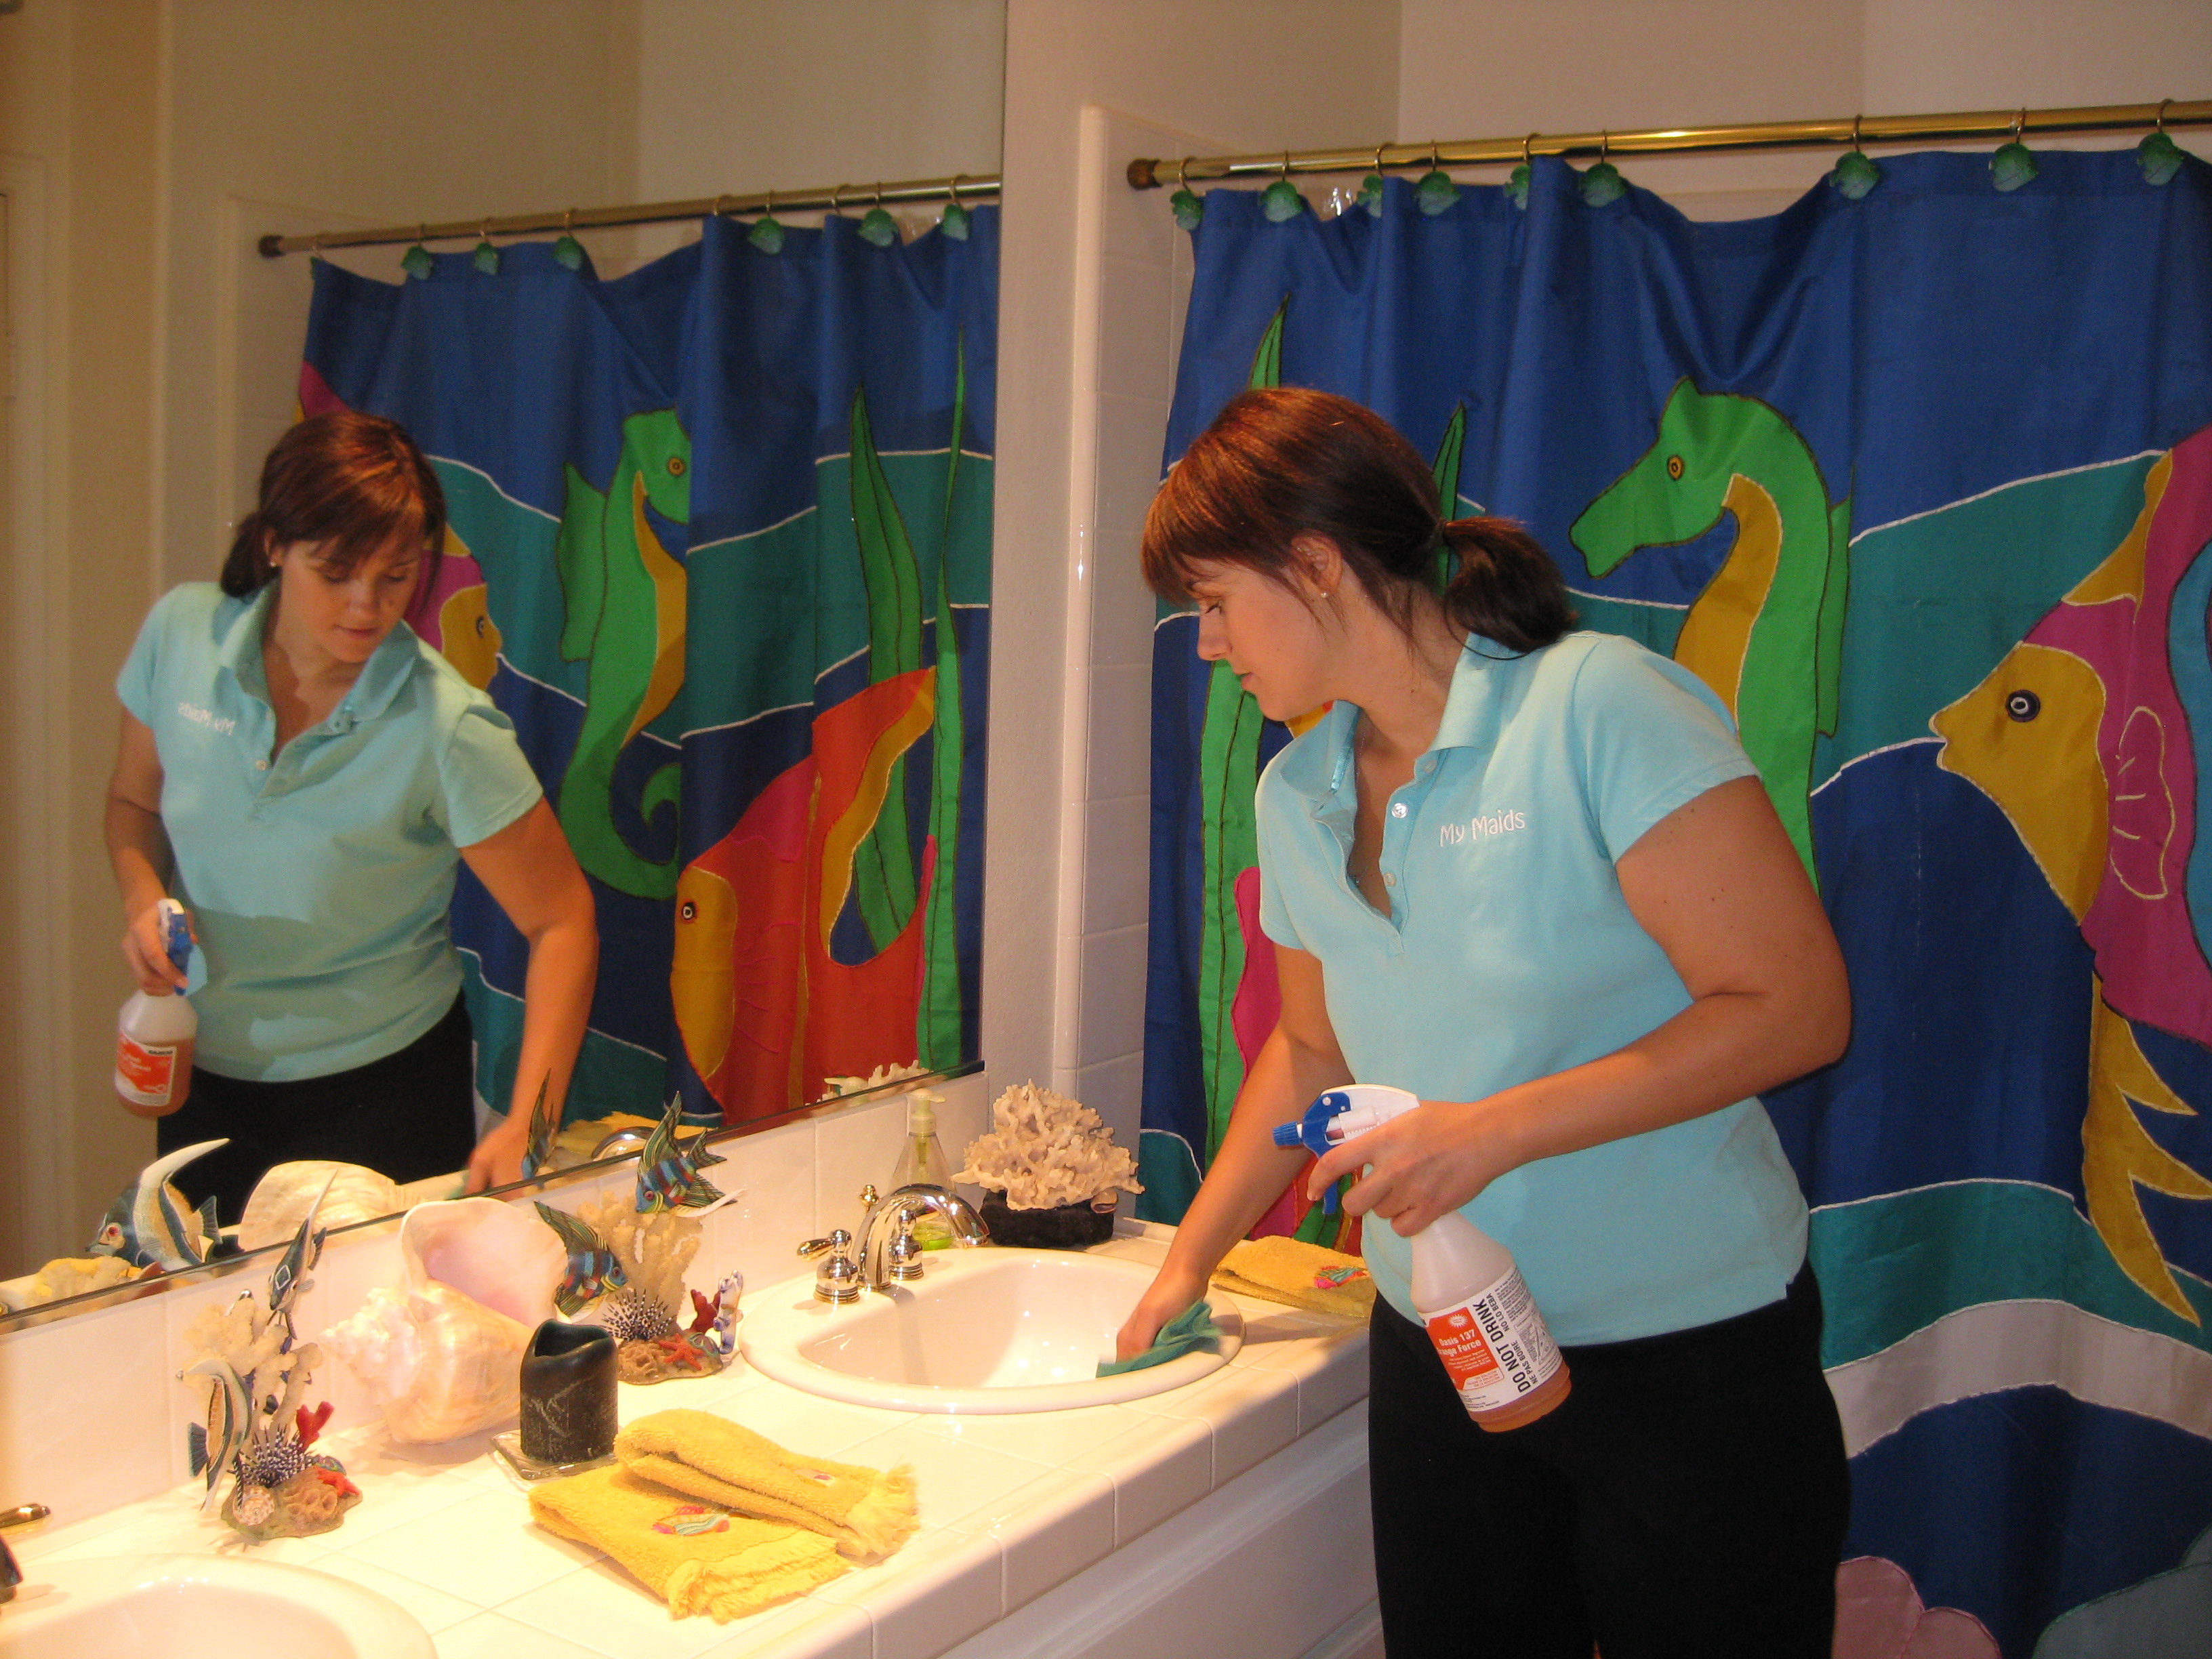 My Maids House Cleaning Service image 11